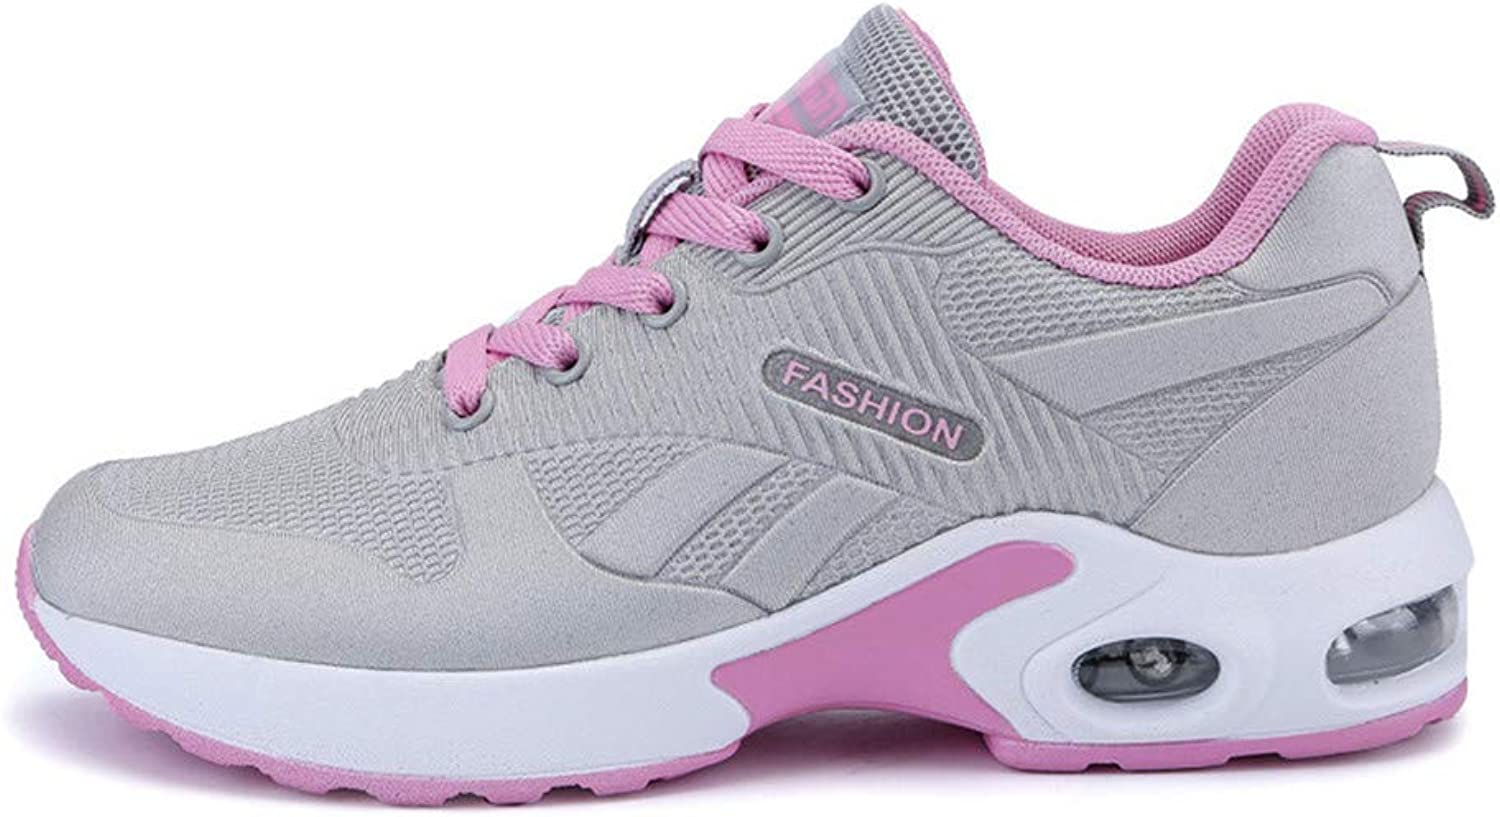 Super frist Fashion Women's Shock Absorption Hiking shoes Outdoor Breathable Non-Slip Breathable Running shoes